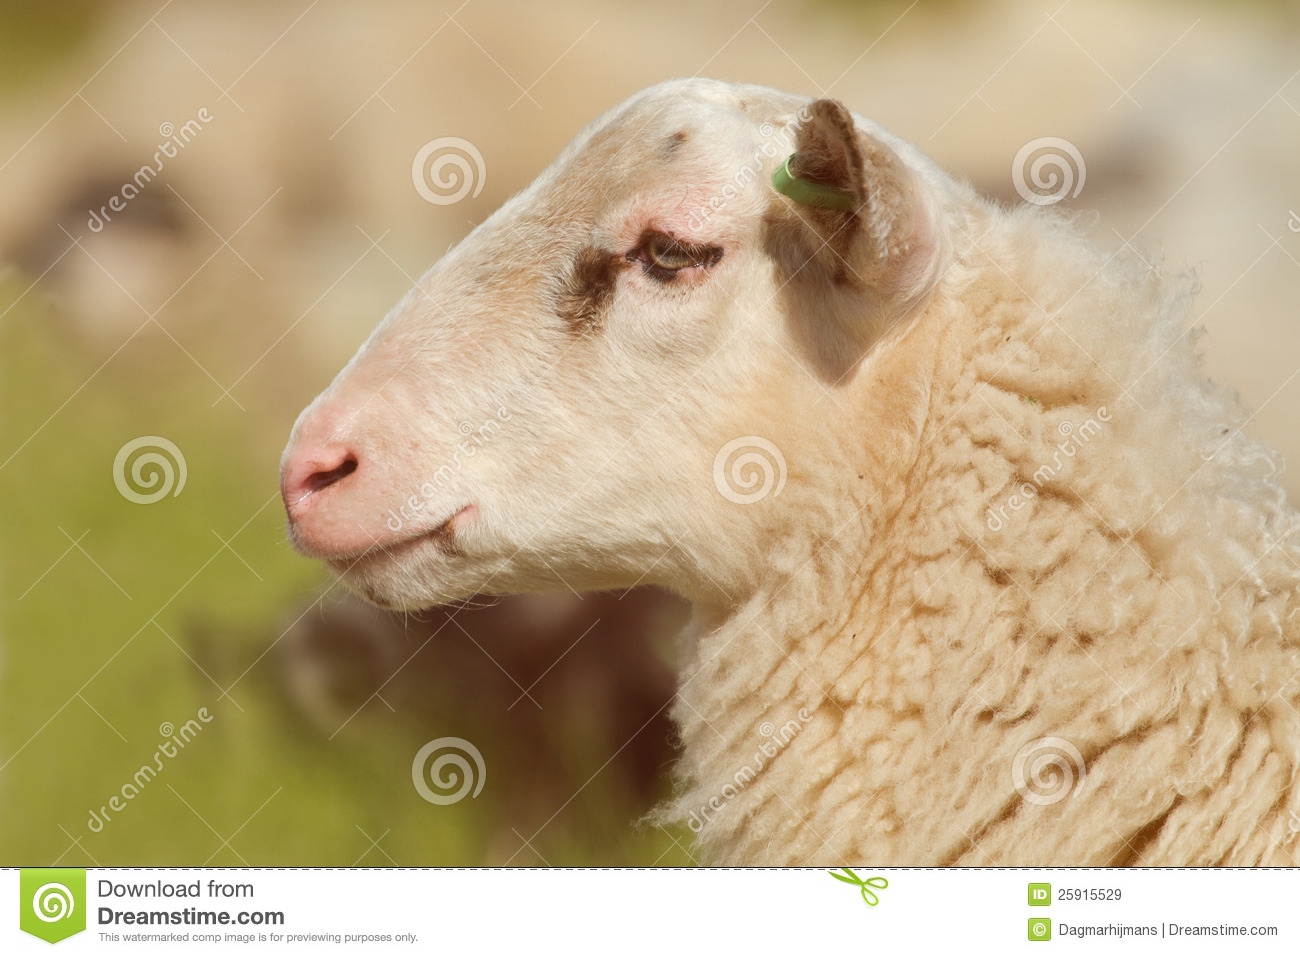 Profile Of A Sheep Royalty Free Stock Images - Image: 25915529